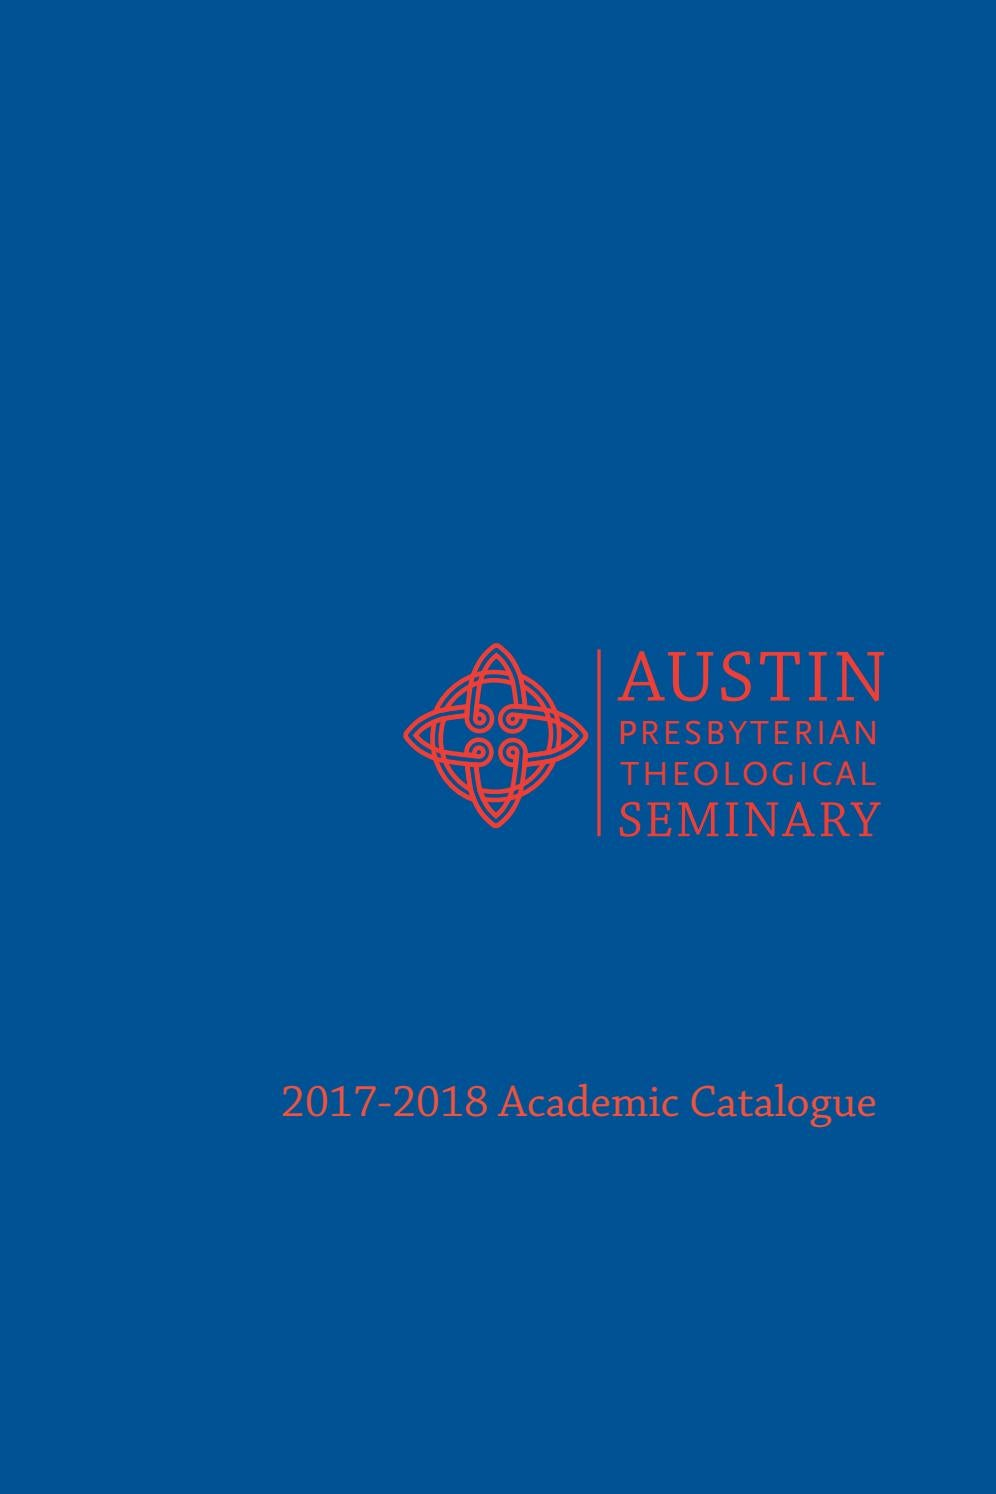 Austin Presbyterian Theological Seminary Academic Catalogue 2017 18 By Austin Presbyterian Theological Seminary Issuu